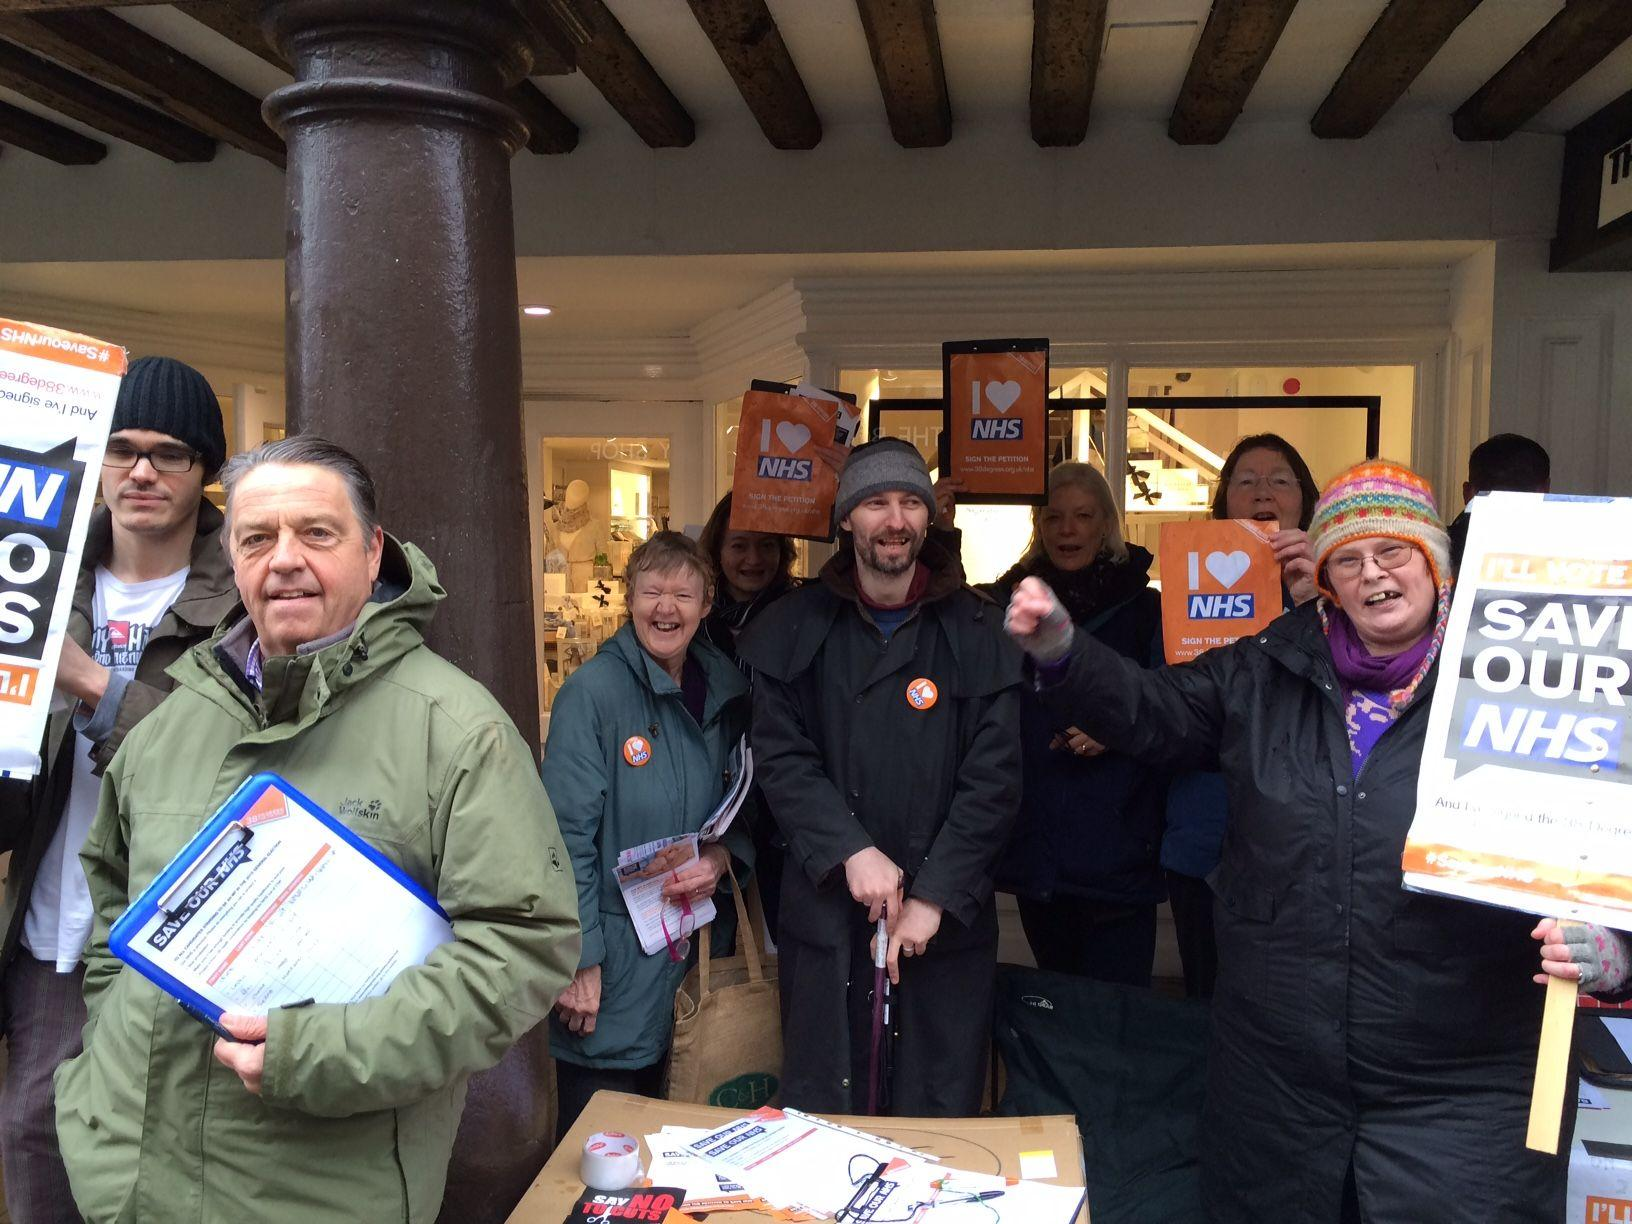 38Degrees campaigners in Winchester High Street on Saturday